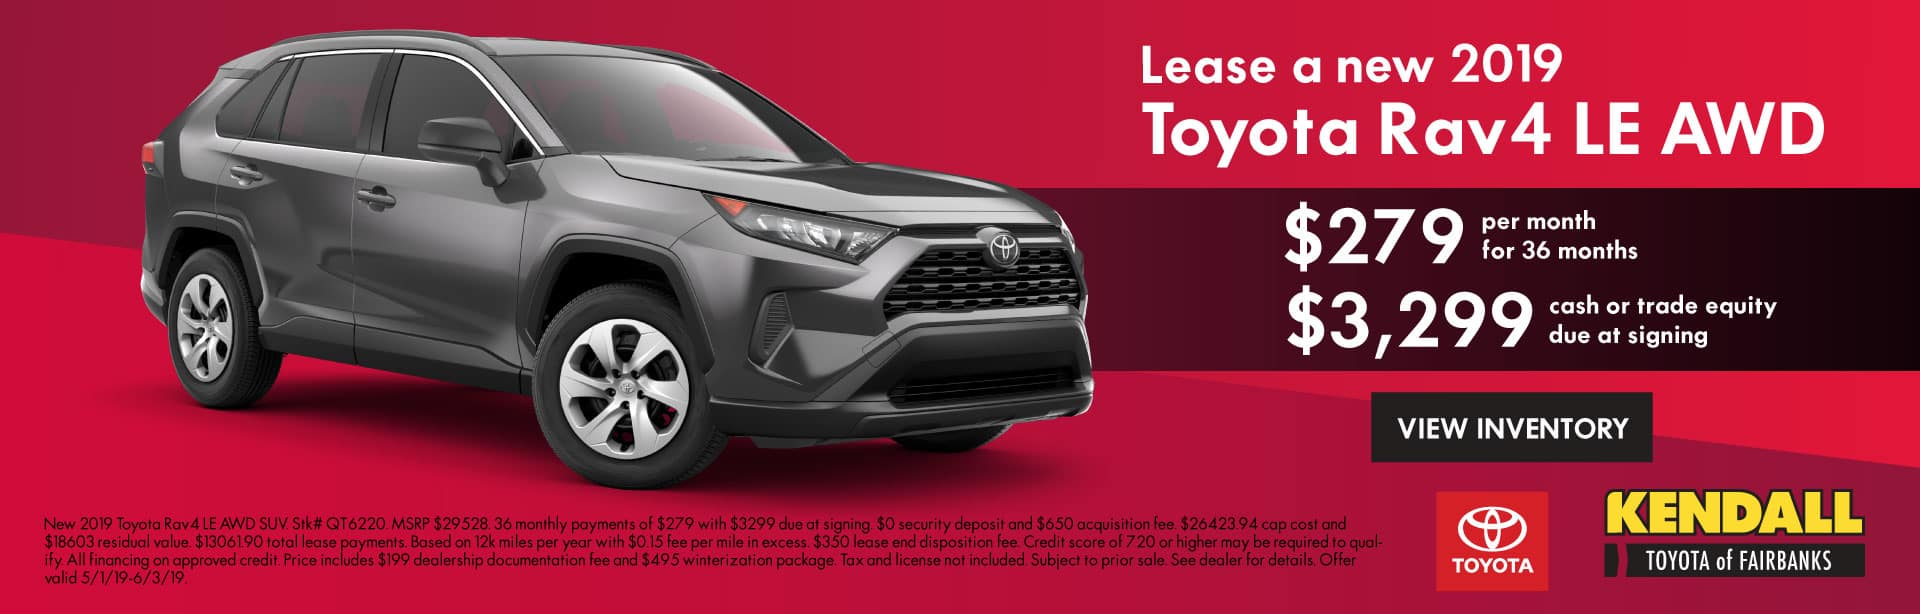 Kendall Toyota Fairbanks >> Kendall Toyota of Fairbanks | New Toyota & Used Car ...